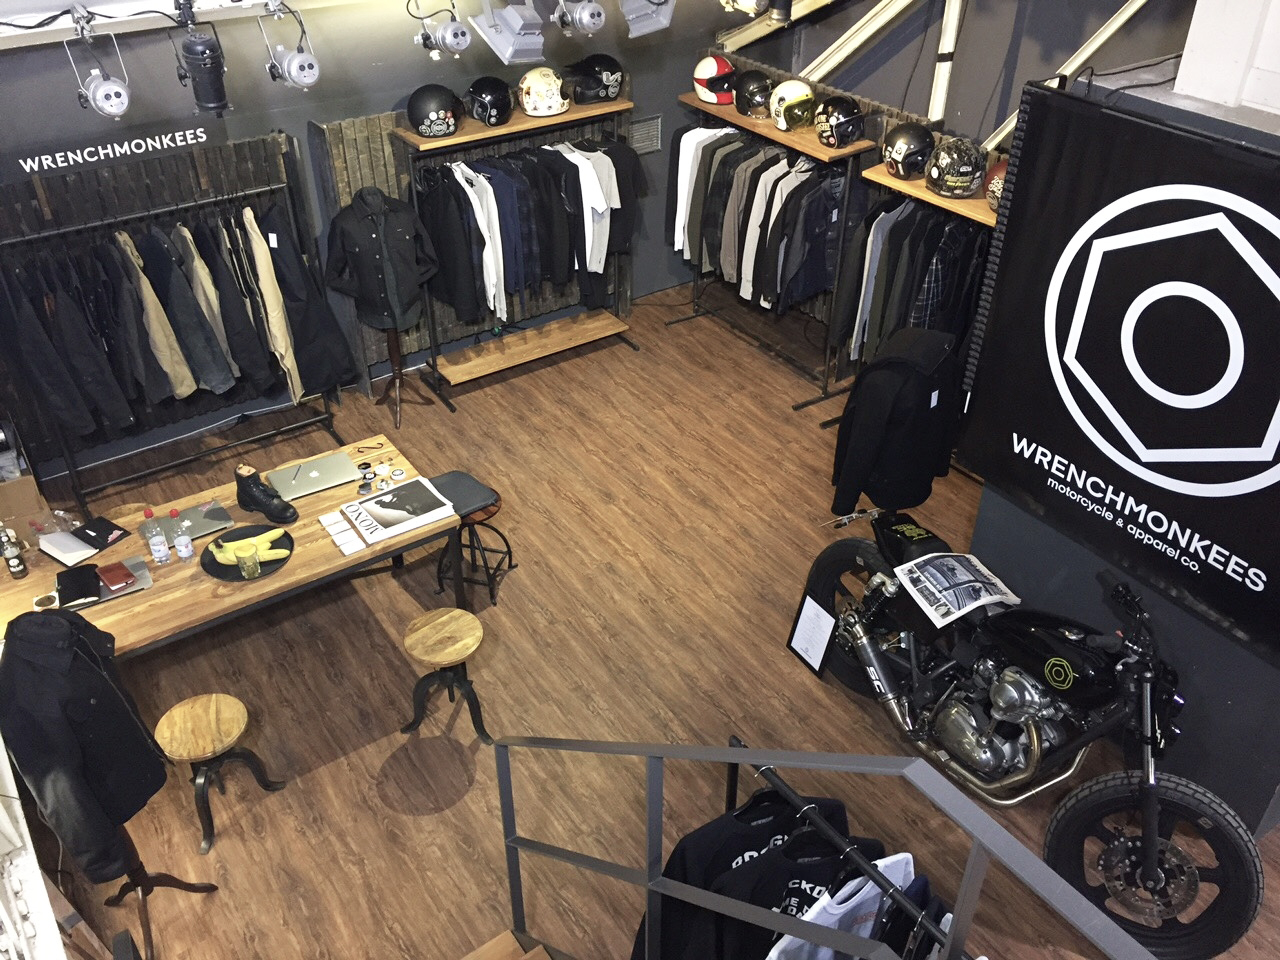 Wrenchmonkees AW17 at the Selvedge Run trade show.